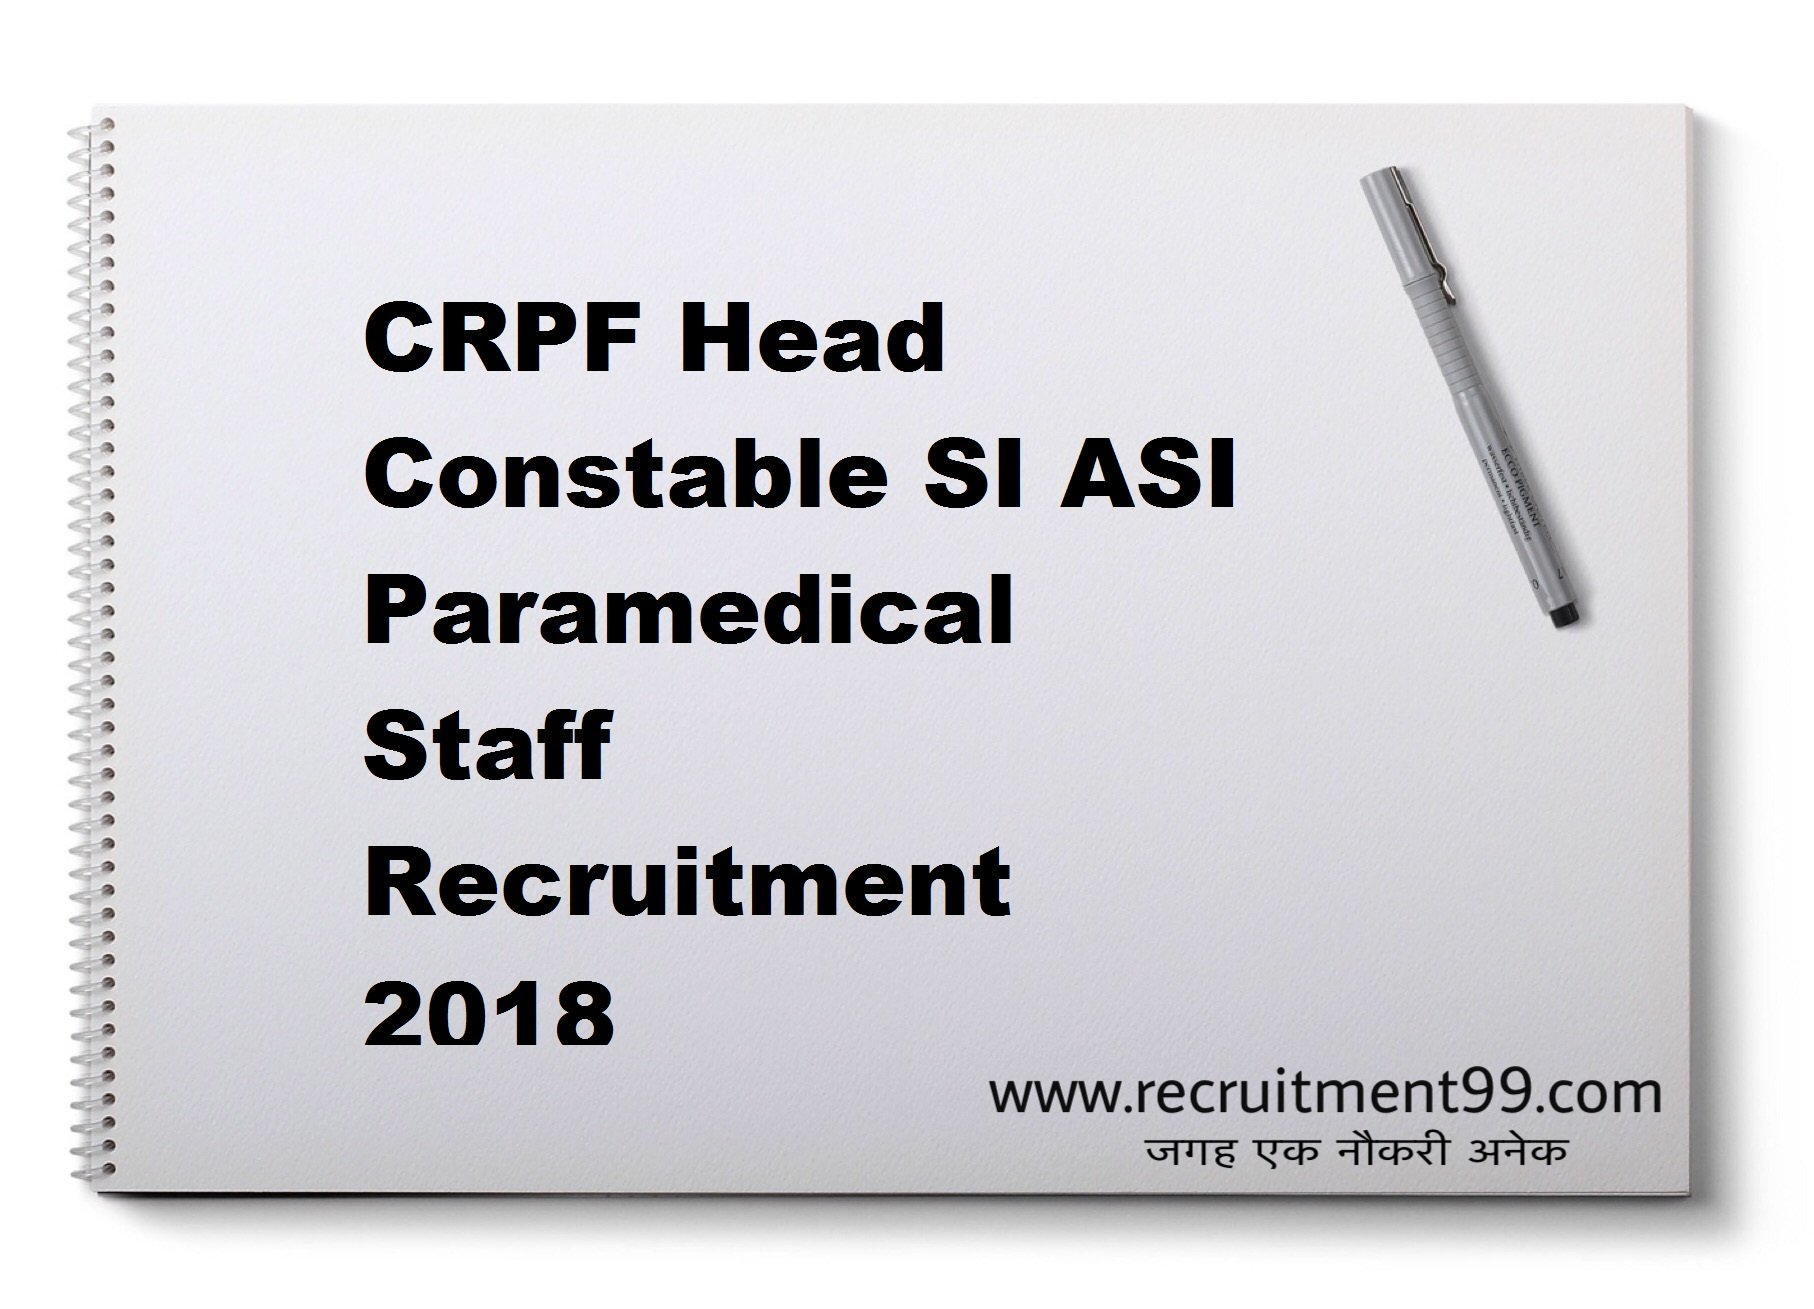 CRPF Head Constable SI ASI Paramedical Staff Recruitment Admit Card Result 2018